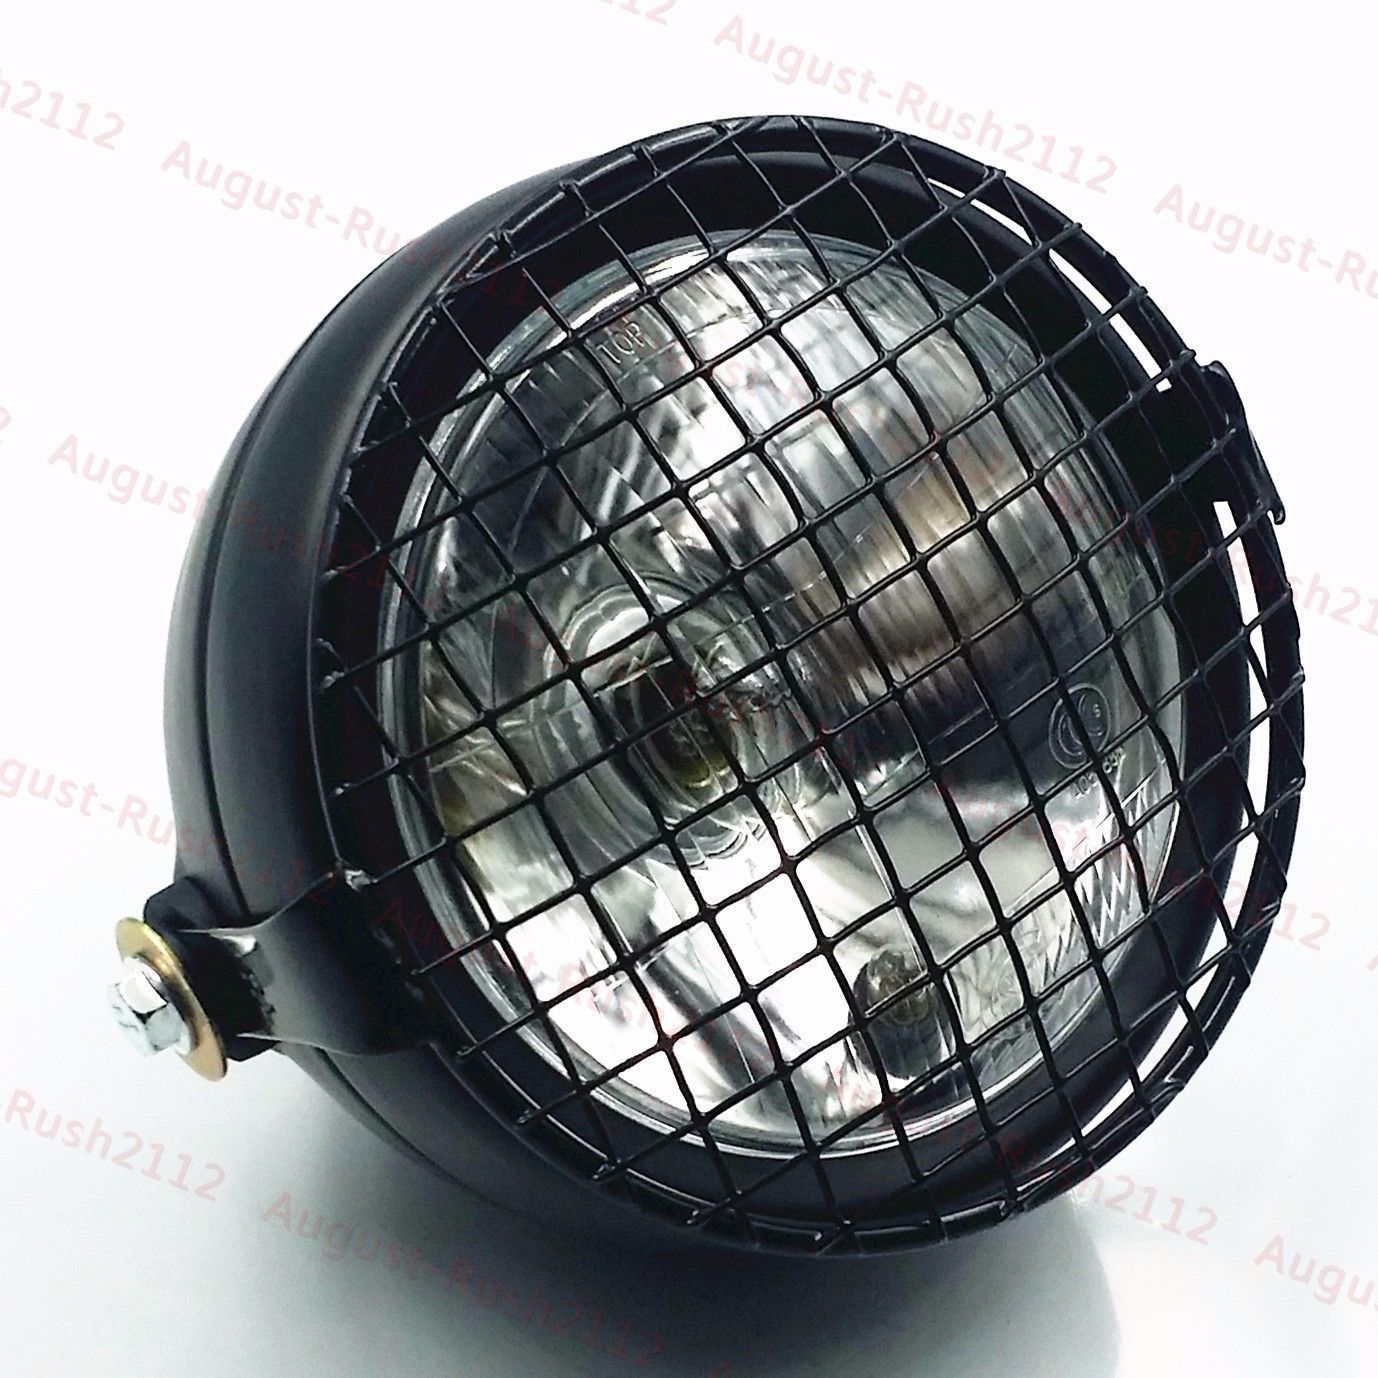 Motorcycle Grill Retro Vintage Side Mount Headlight For Honda Triumph CB Cafe GN